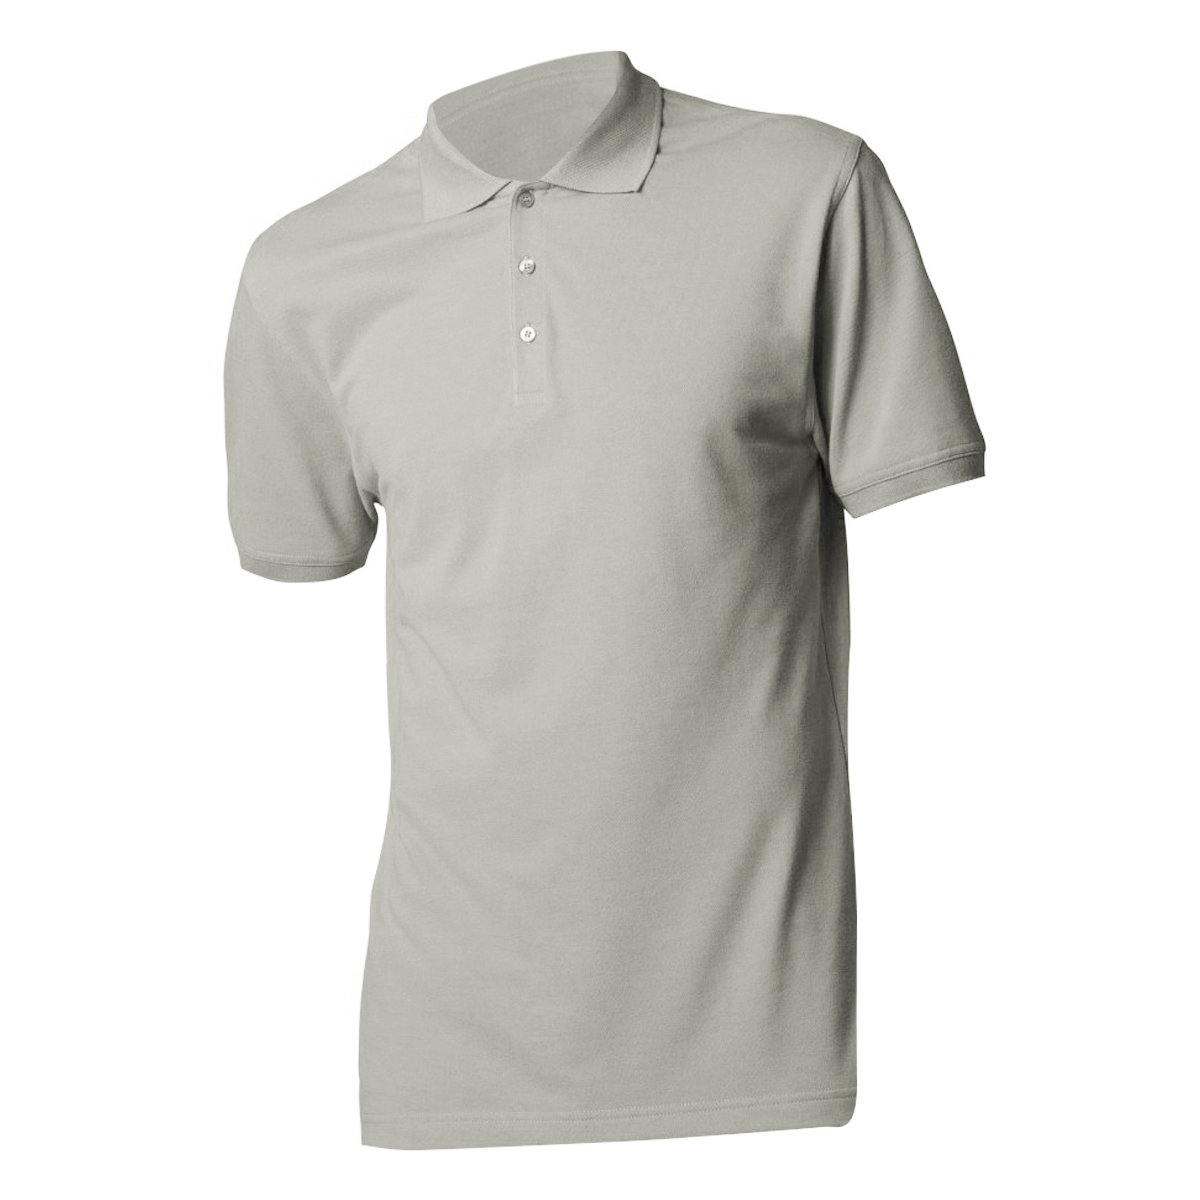 Kustom Kit Mens Slim Fit Short Sleeve Polo Shirt (M) (Light Grey) UTBC3236_11